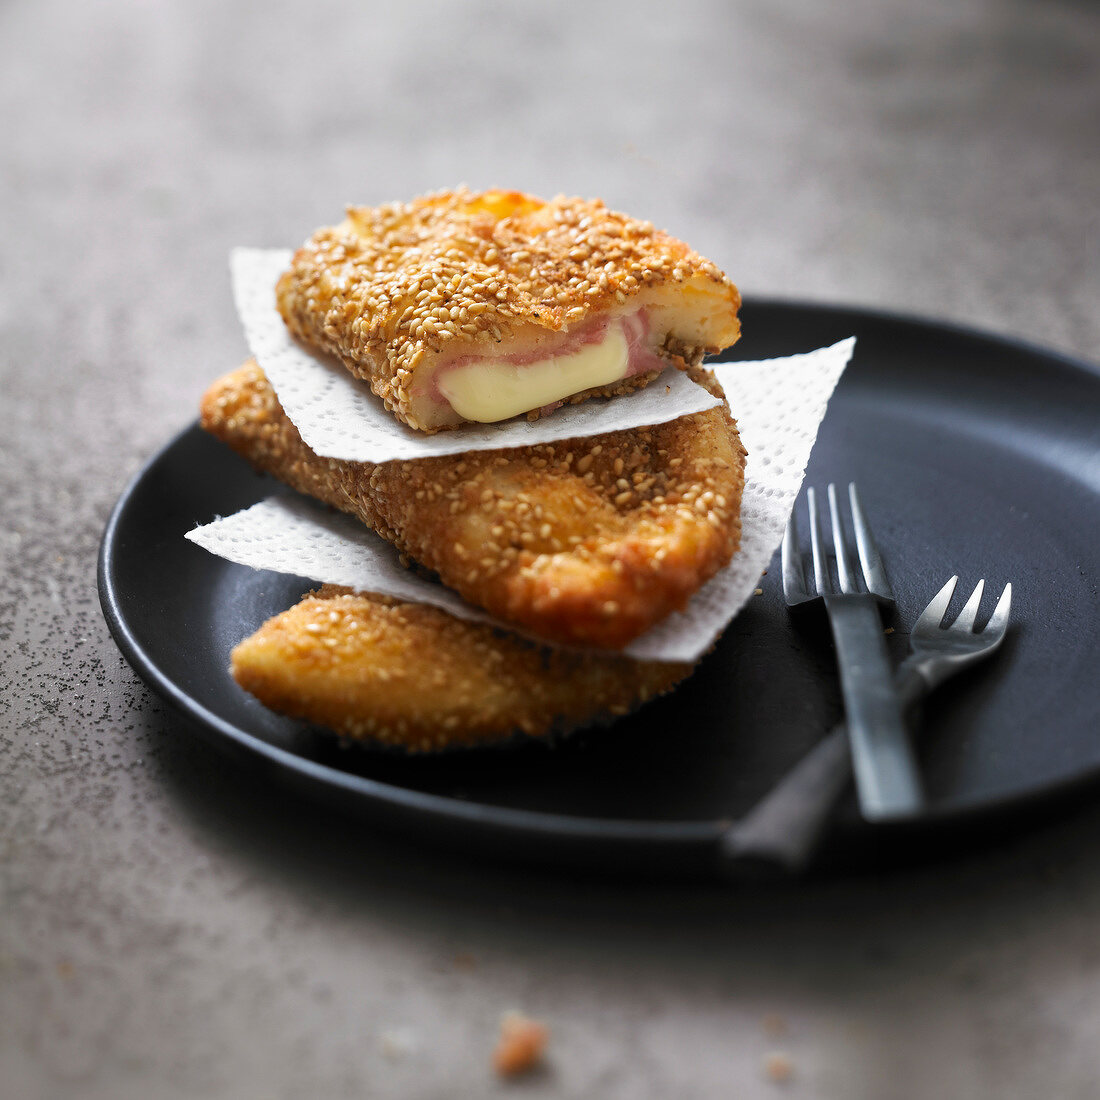 Ham and cheese breaded turnovers